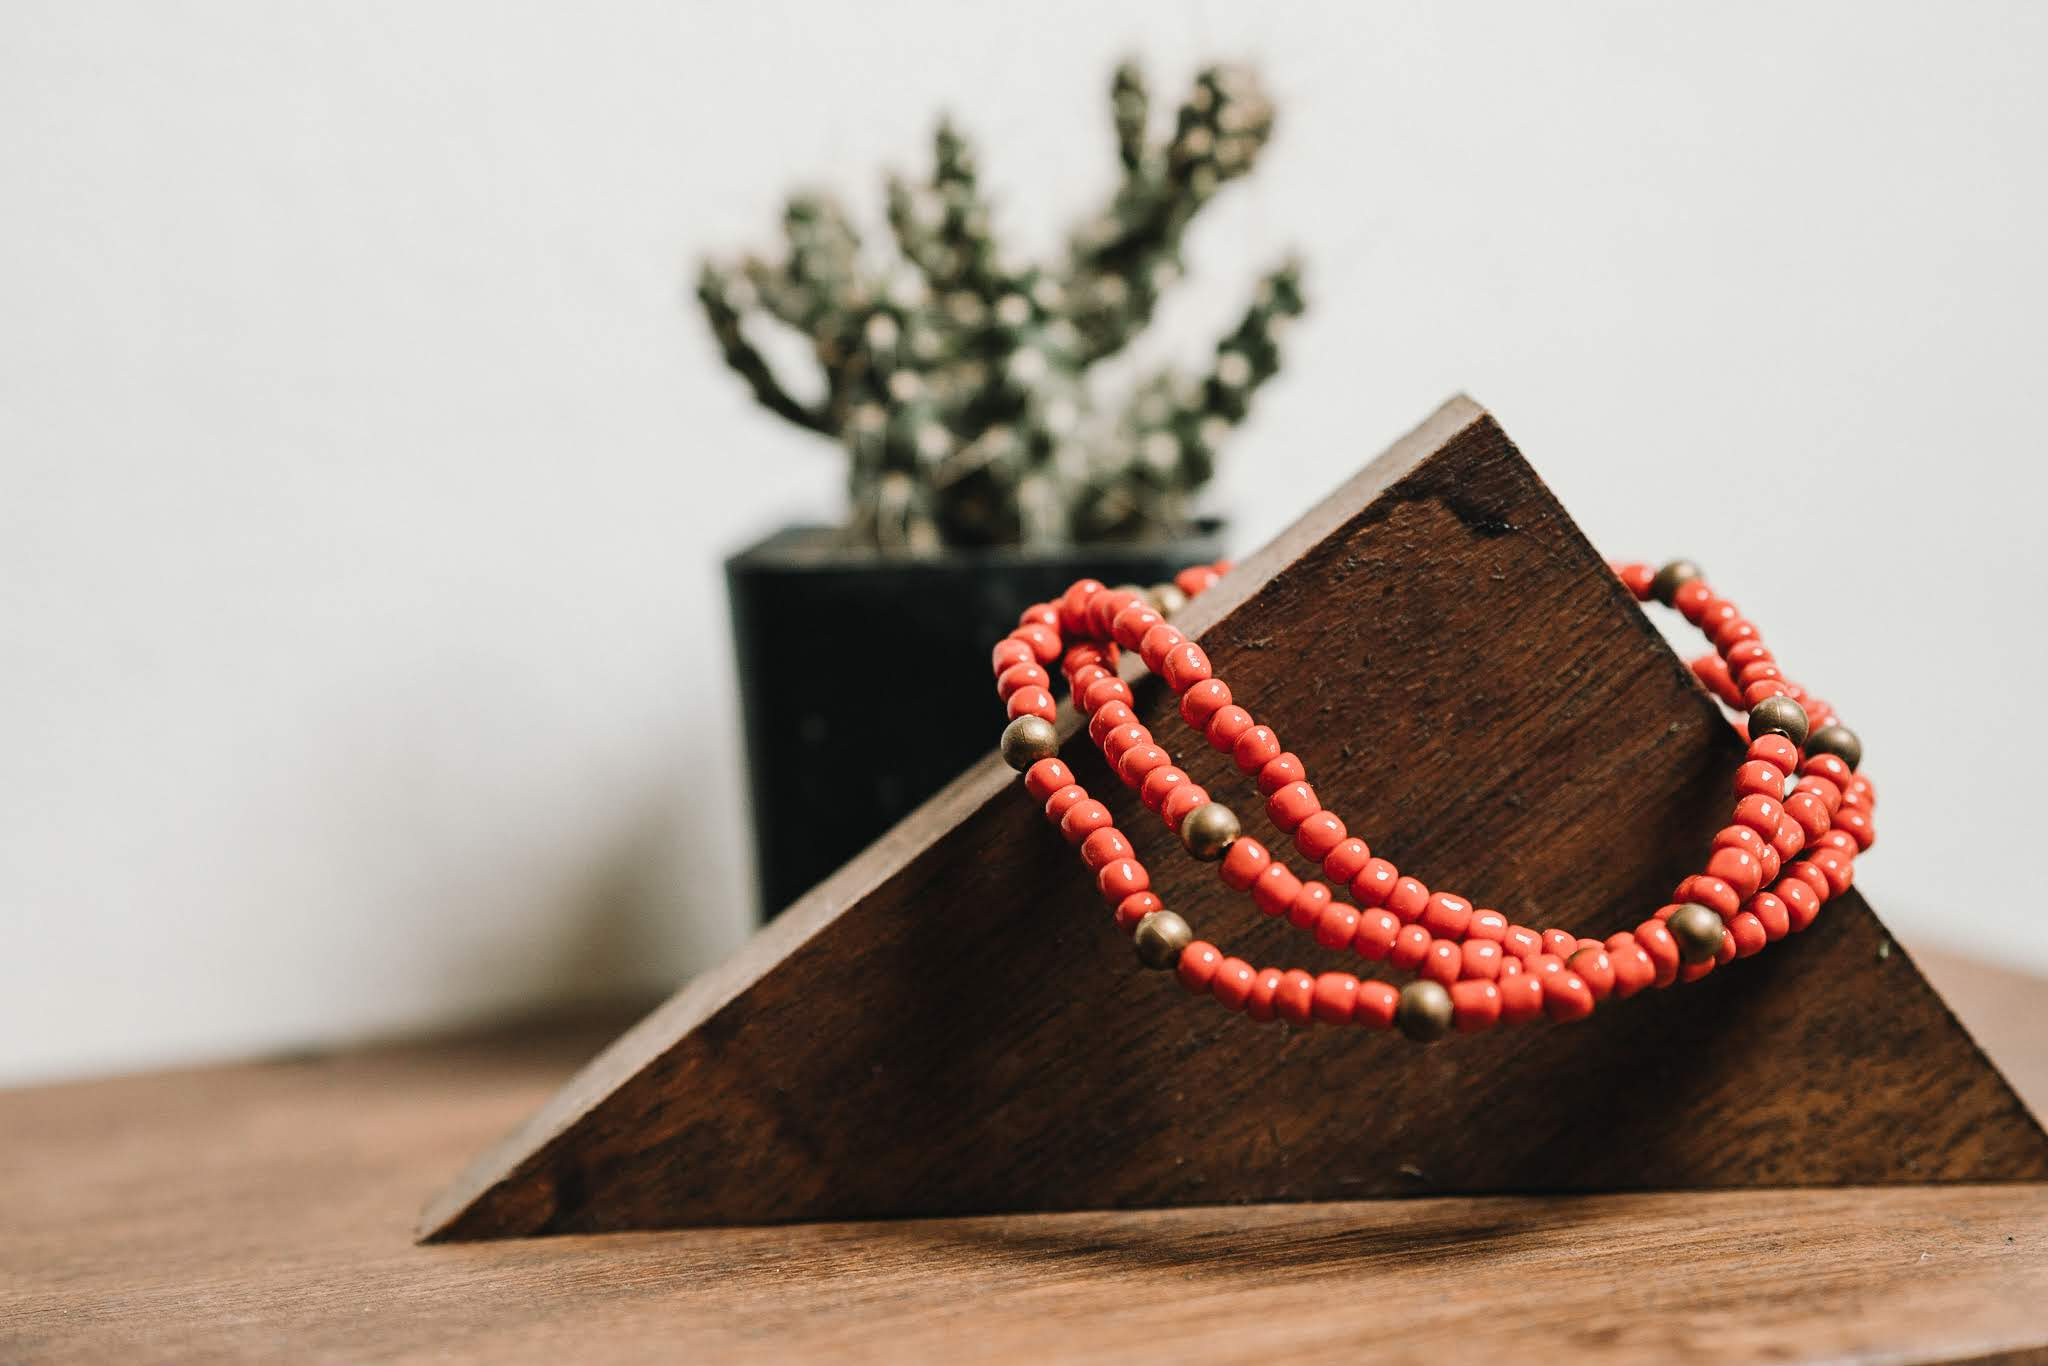 Ethically handmade jewelry